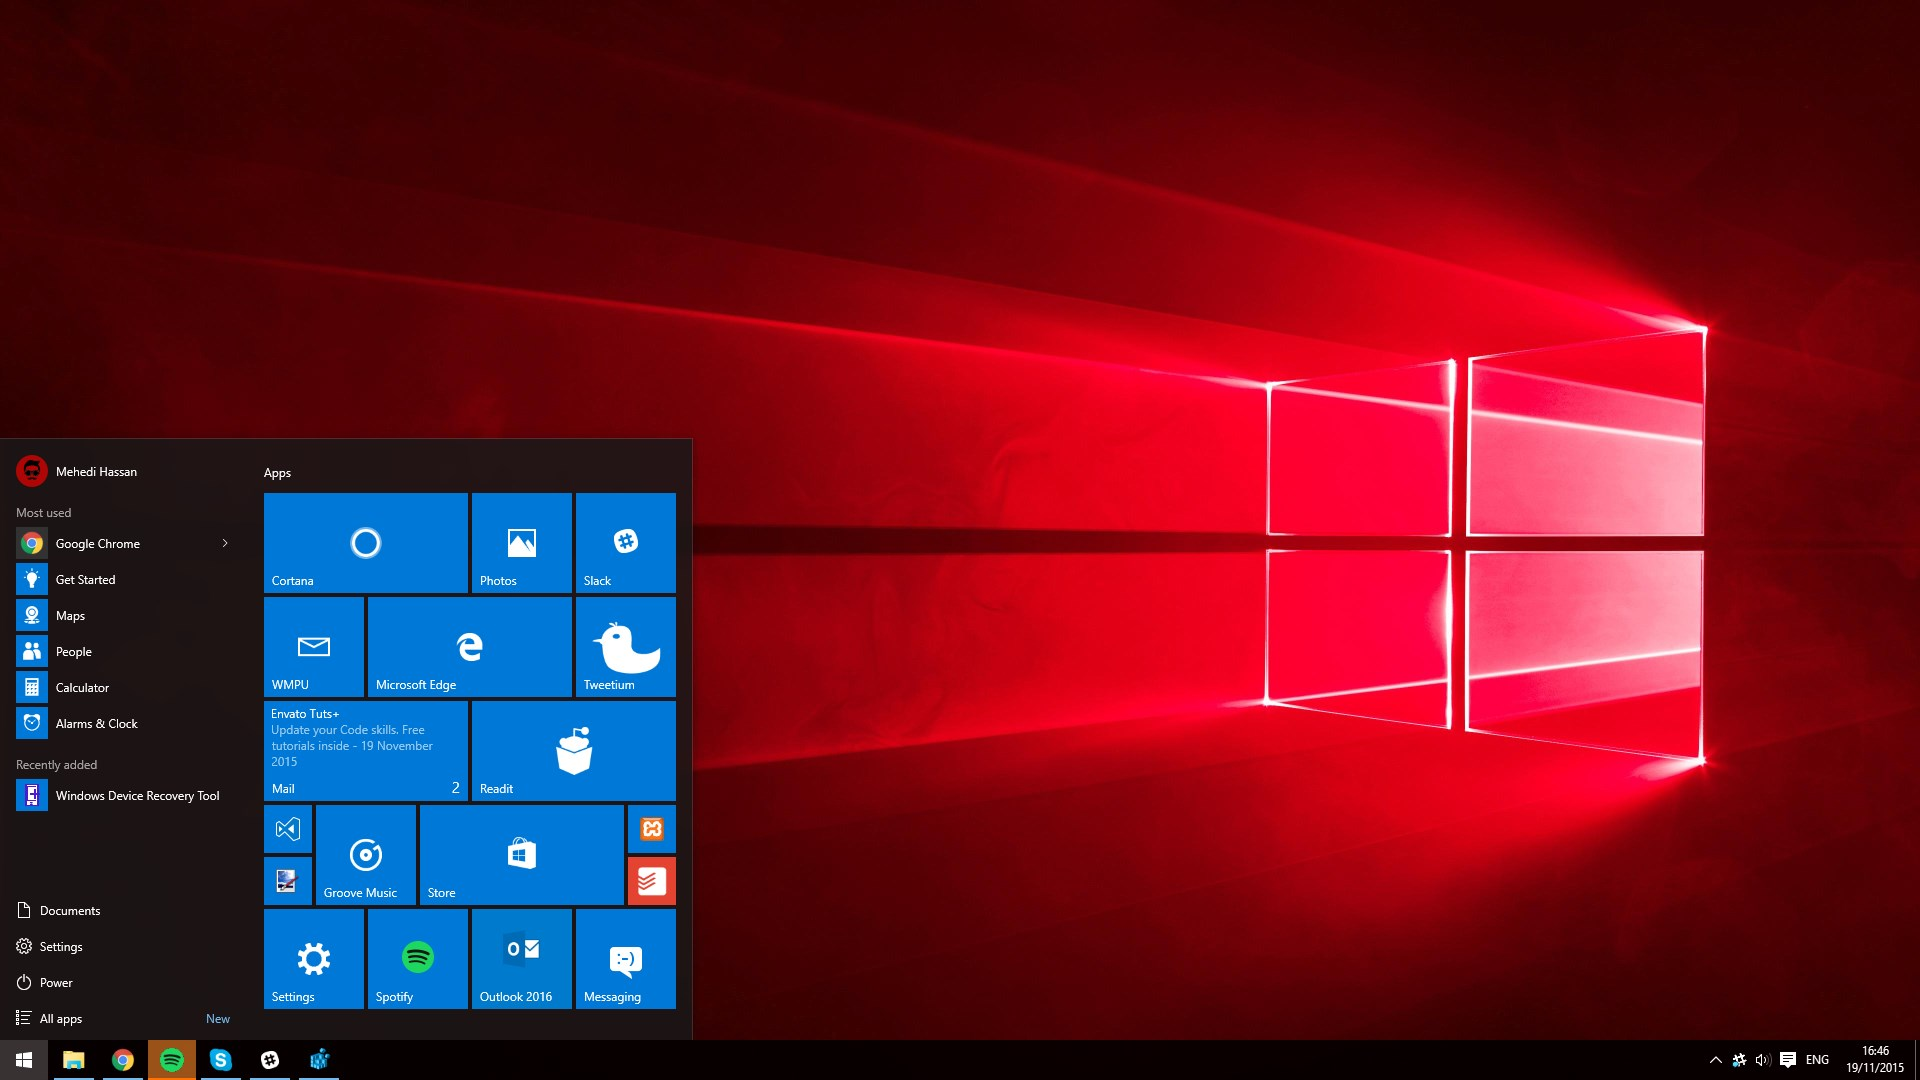 Download Windows 7, 8.1 or 10 ISO Images Direct …